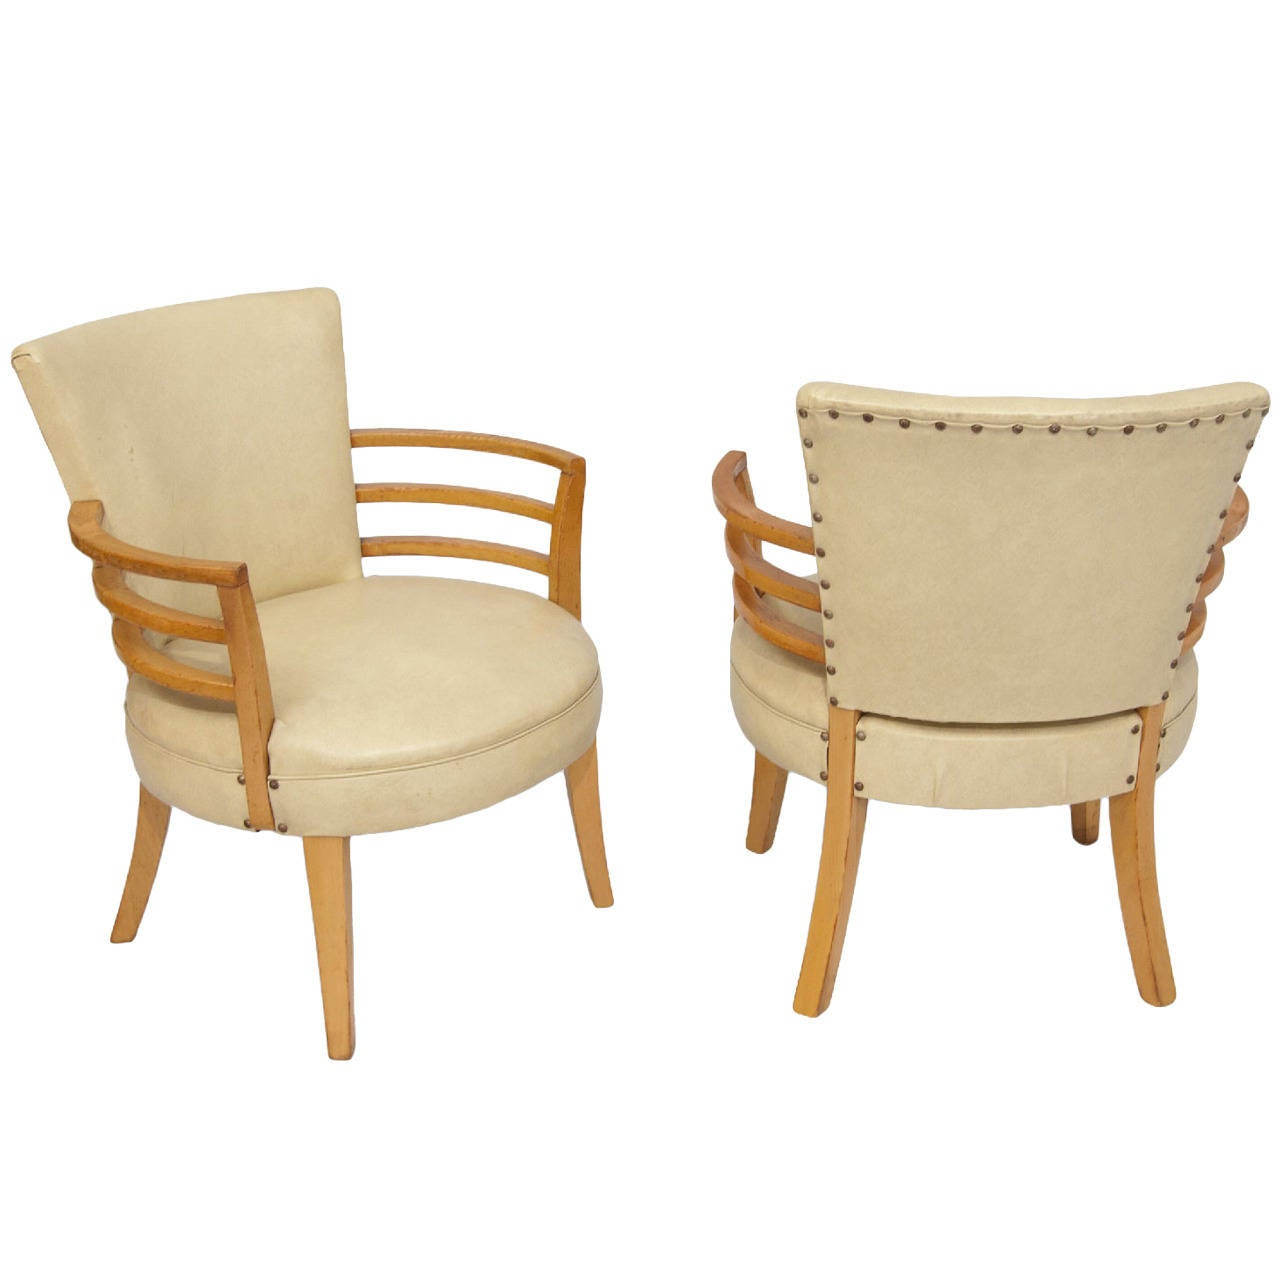 Mid century modern armchairs for sale at 1stdibs for Mid century modern armchairs